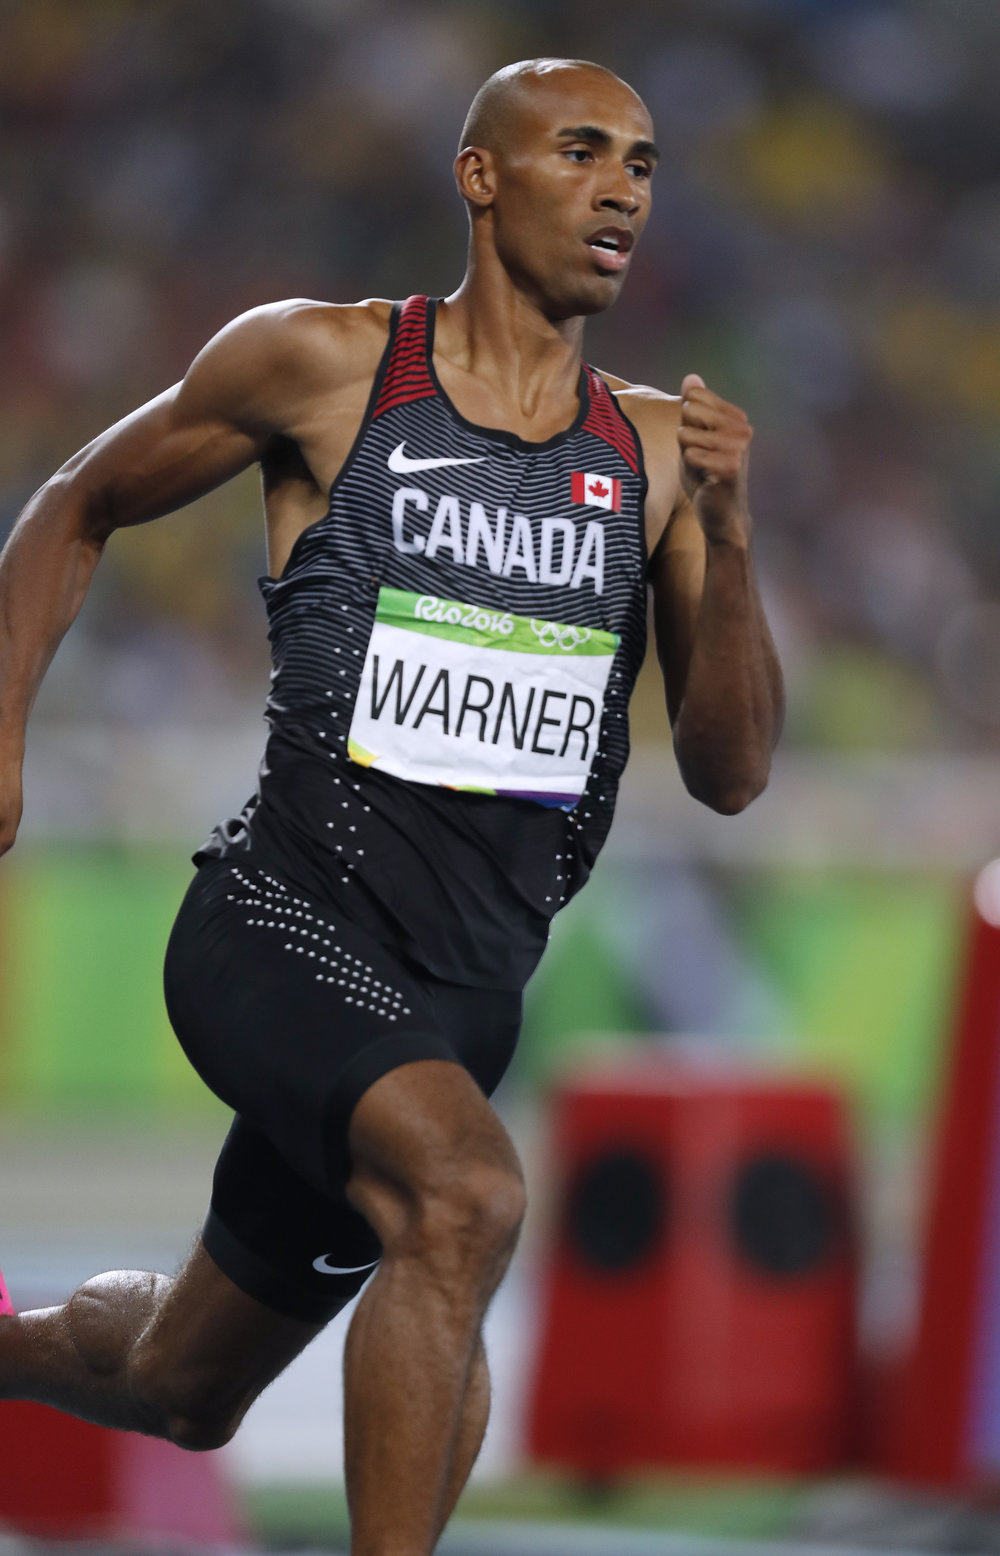 Damian Warner photo credit: Athletics Canada